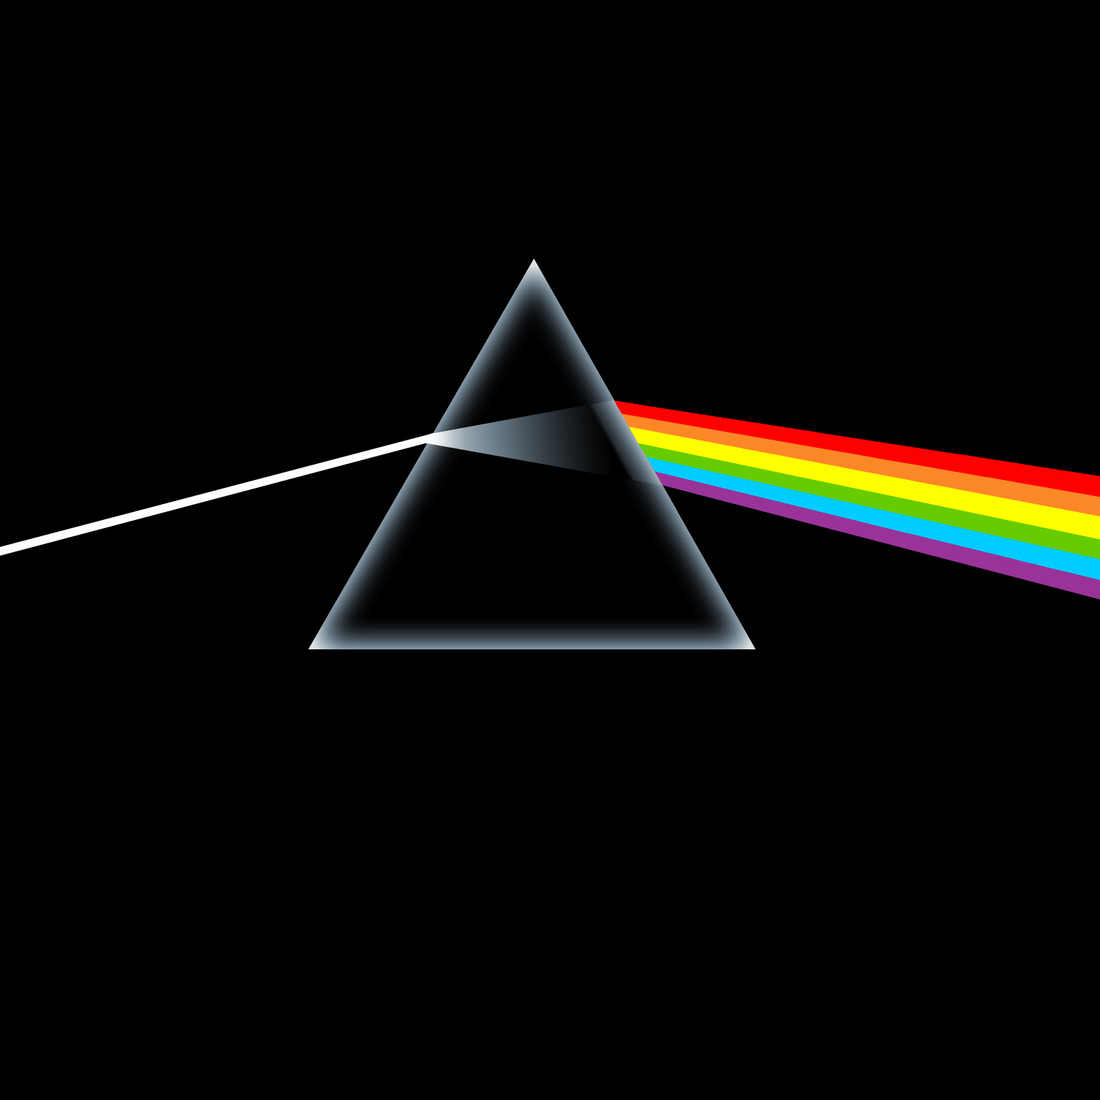 What Are Your Top Five Album Covers All Songs